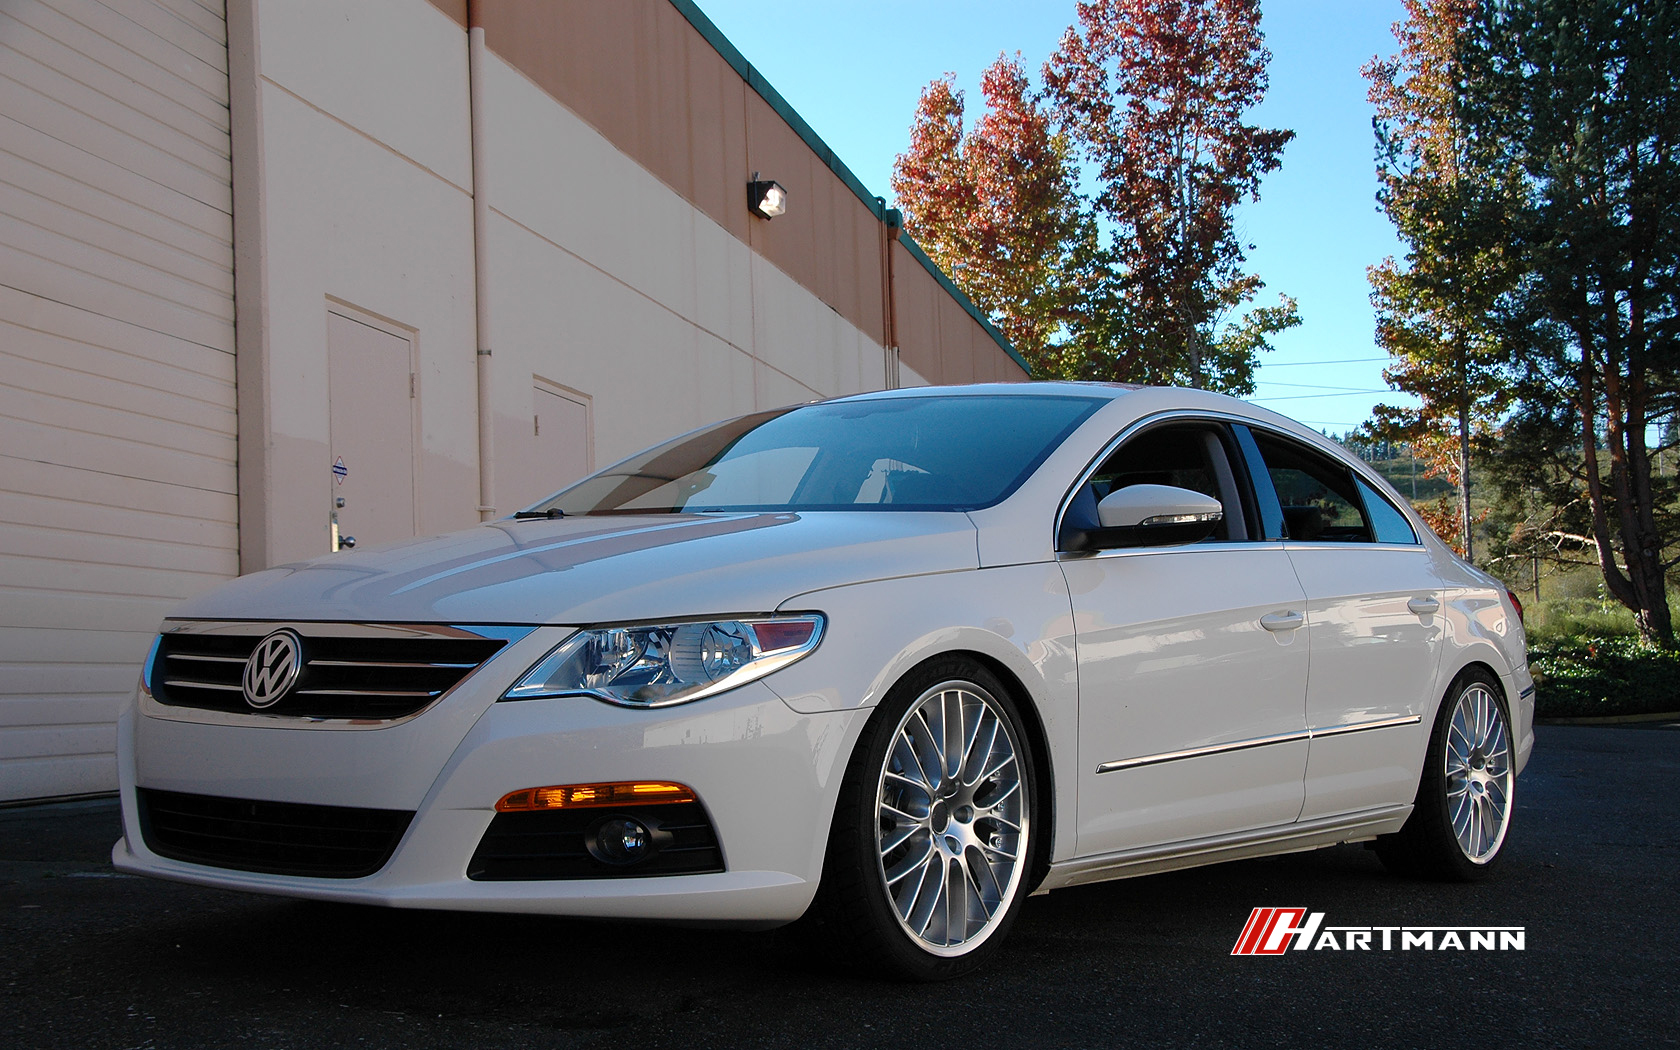 Euromesh 3 Gs Ml Photos Hartmann Wheels